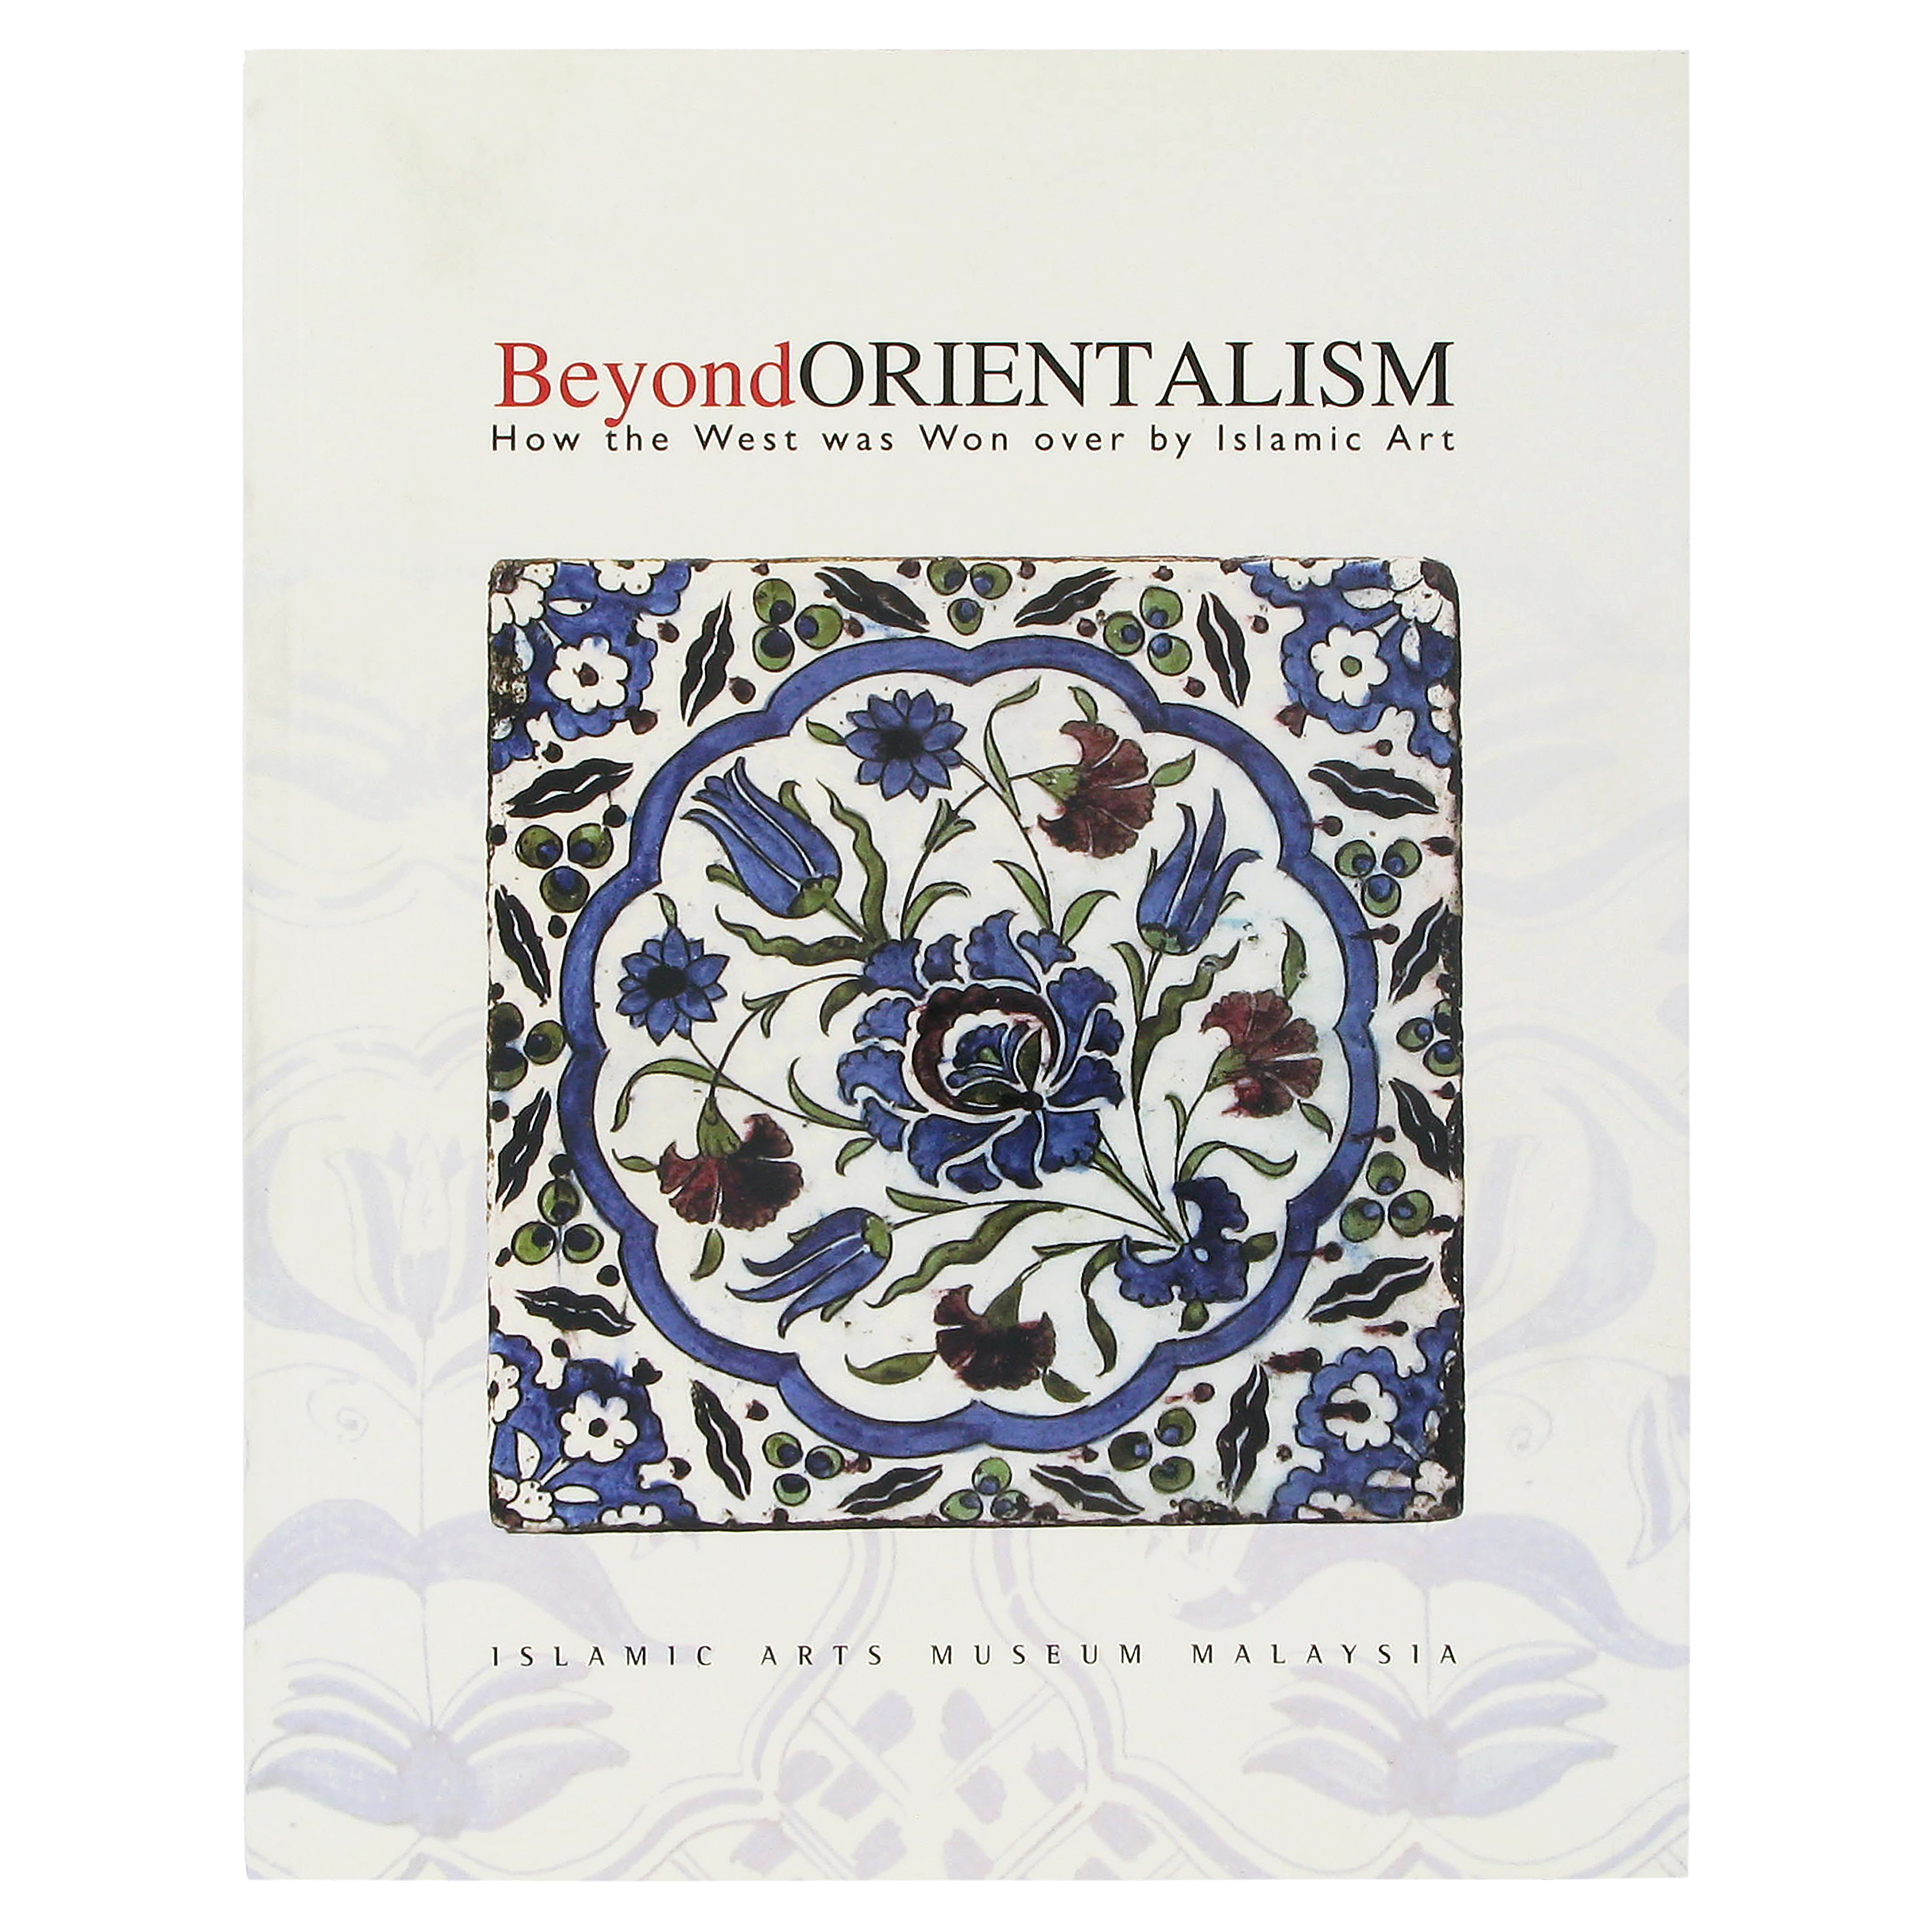 Beyond Orientalism: How the West was Won over by Islamic Art